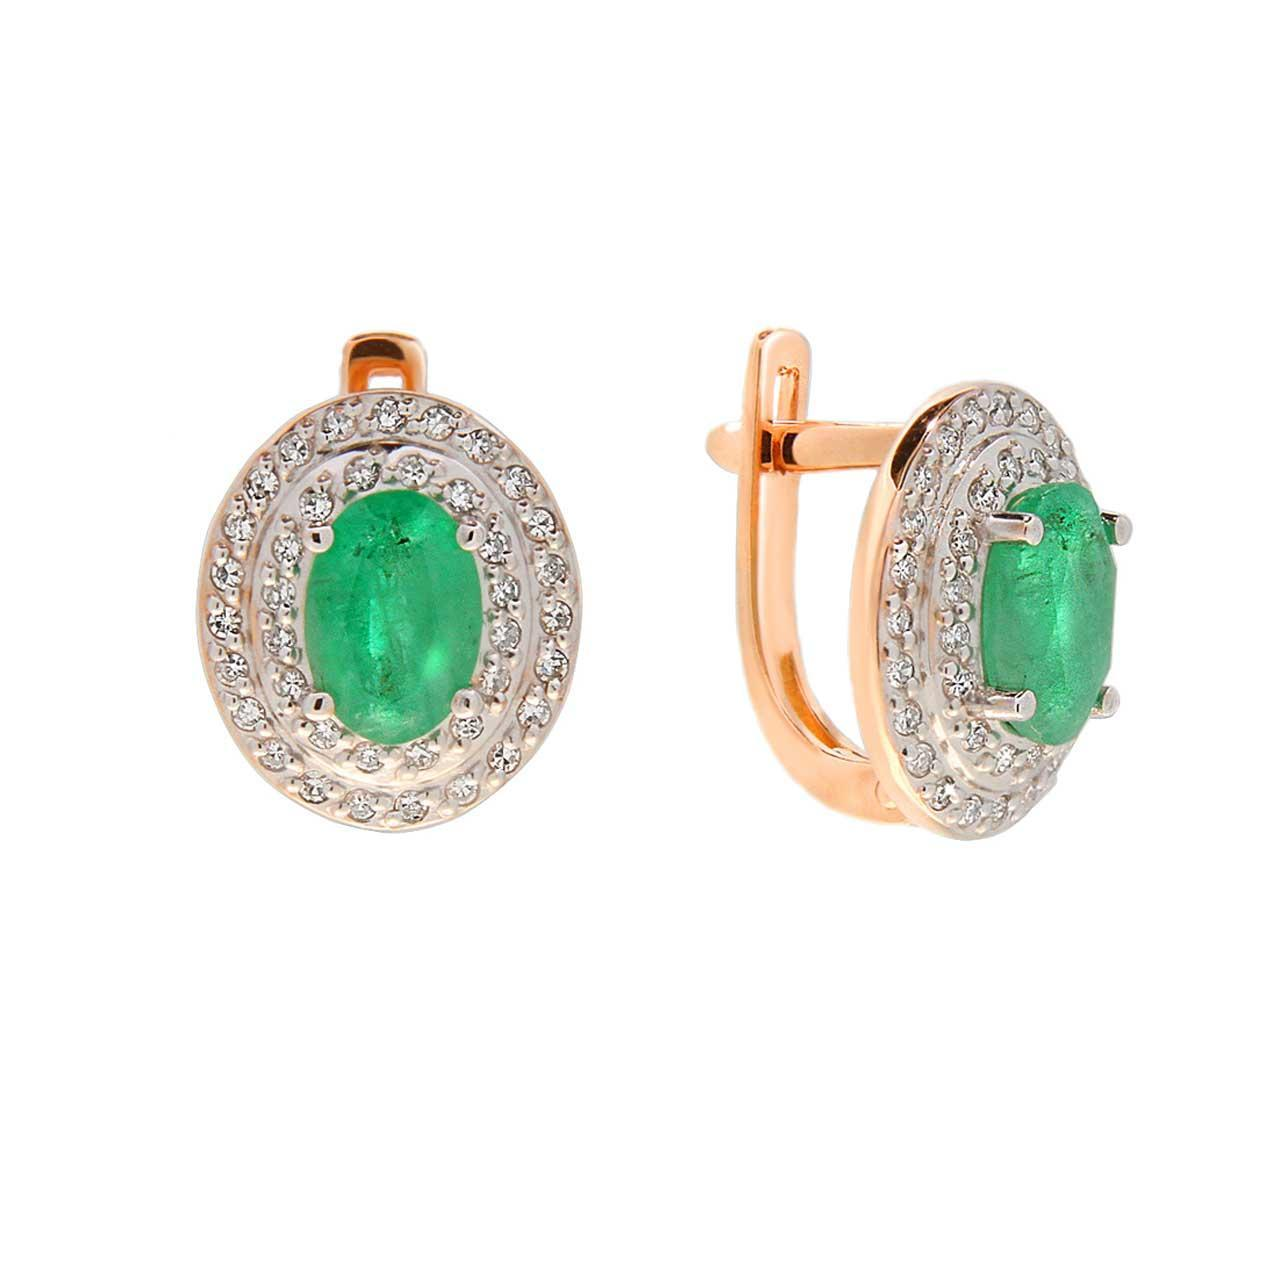 Russian emerald elliptical earrings 1